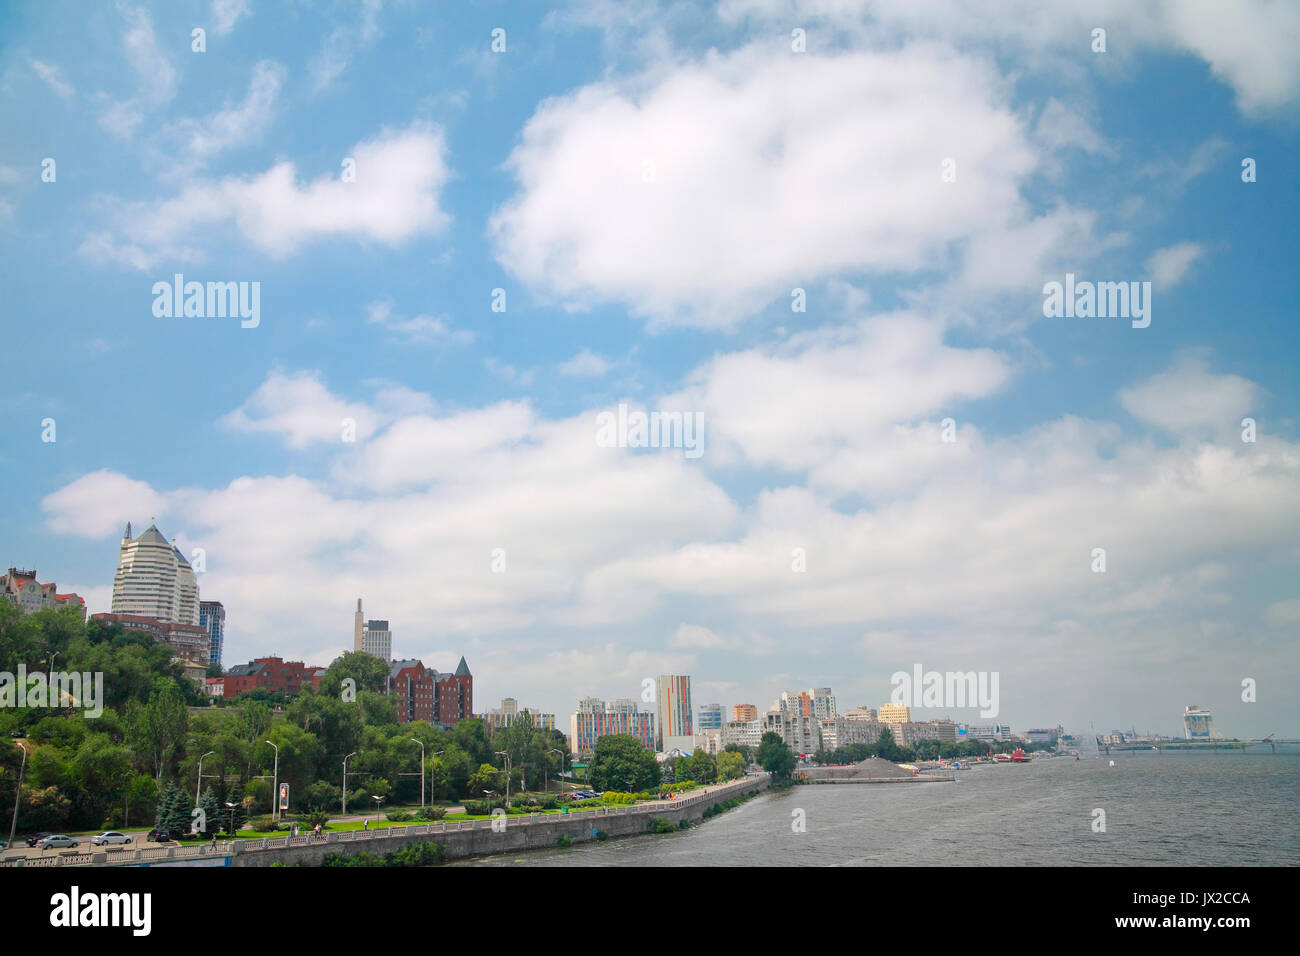 Dnipropetrovsk embankment (Dnepr) against the sky with clouds - Stock Image